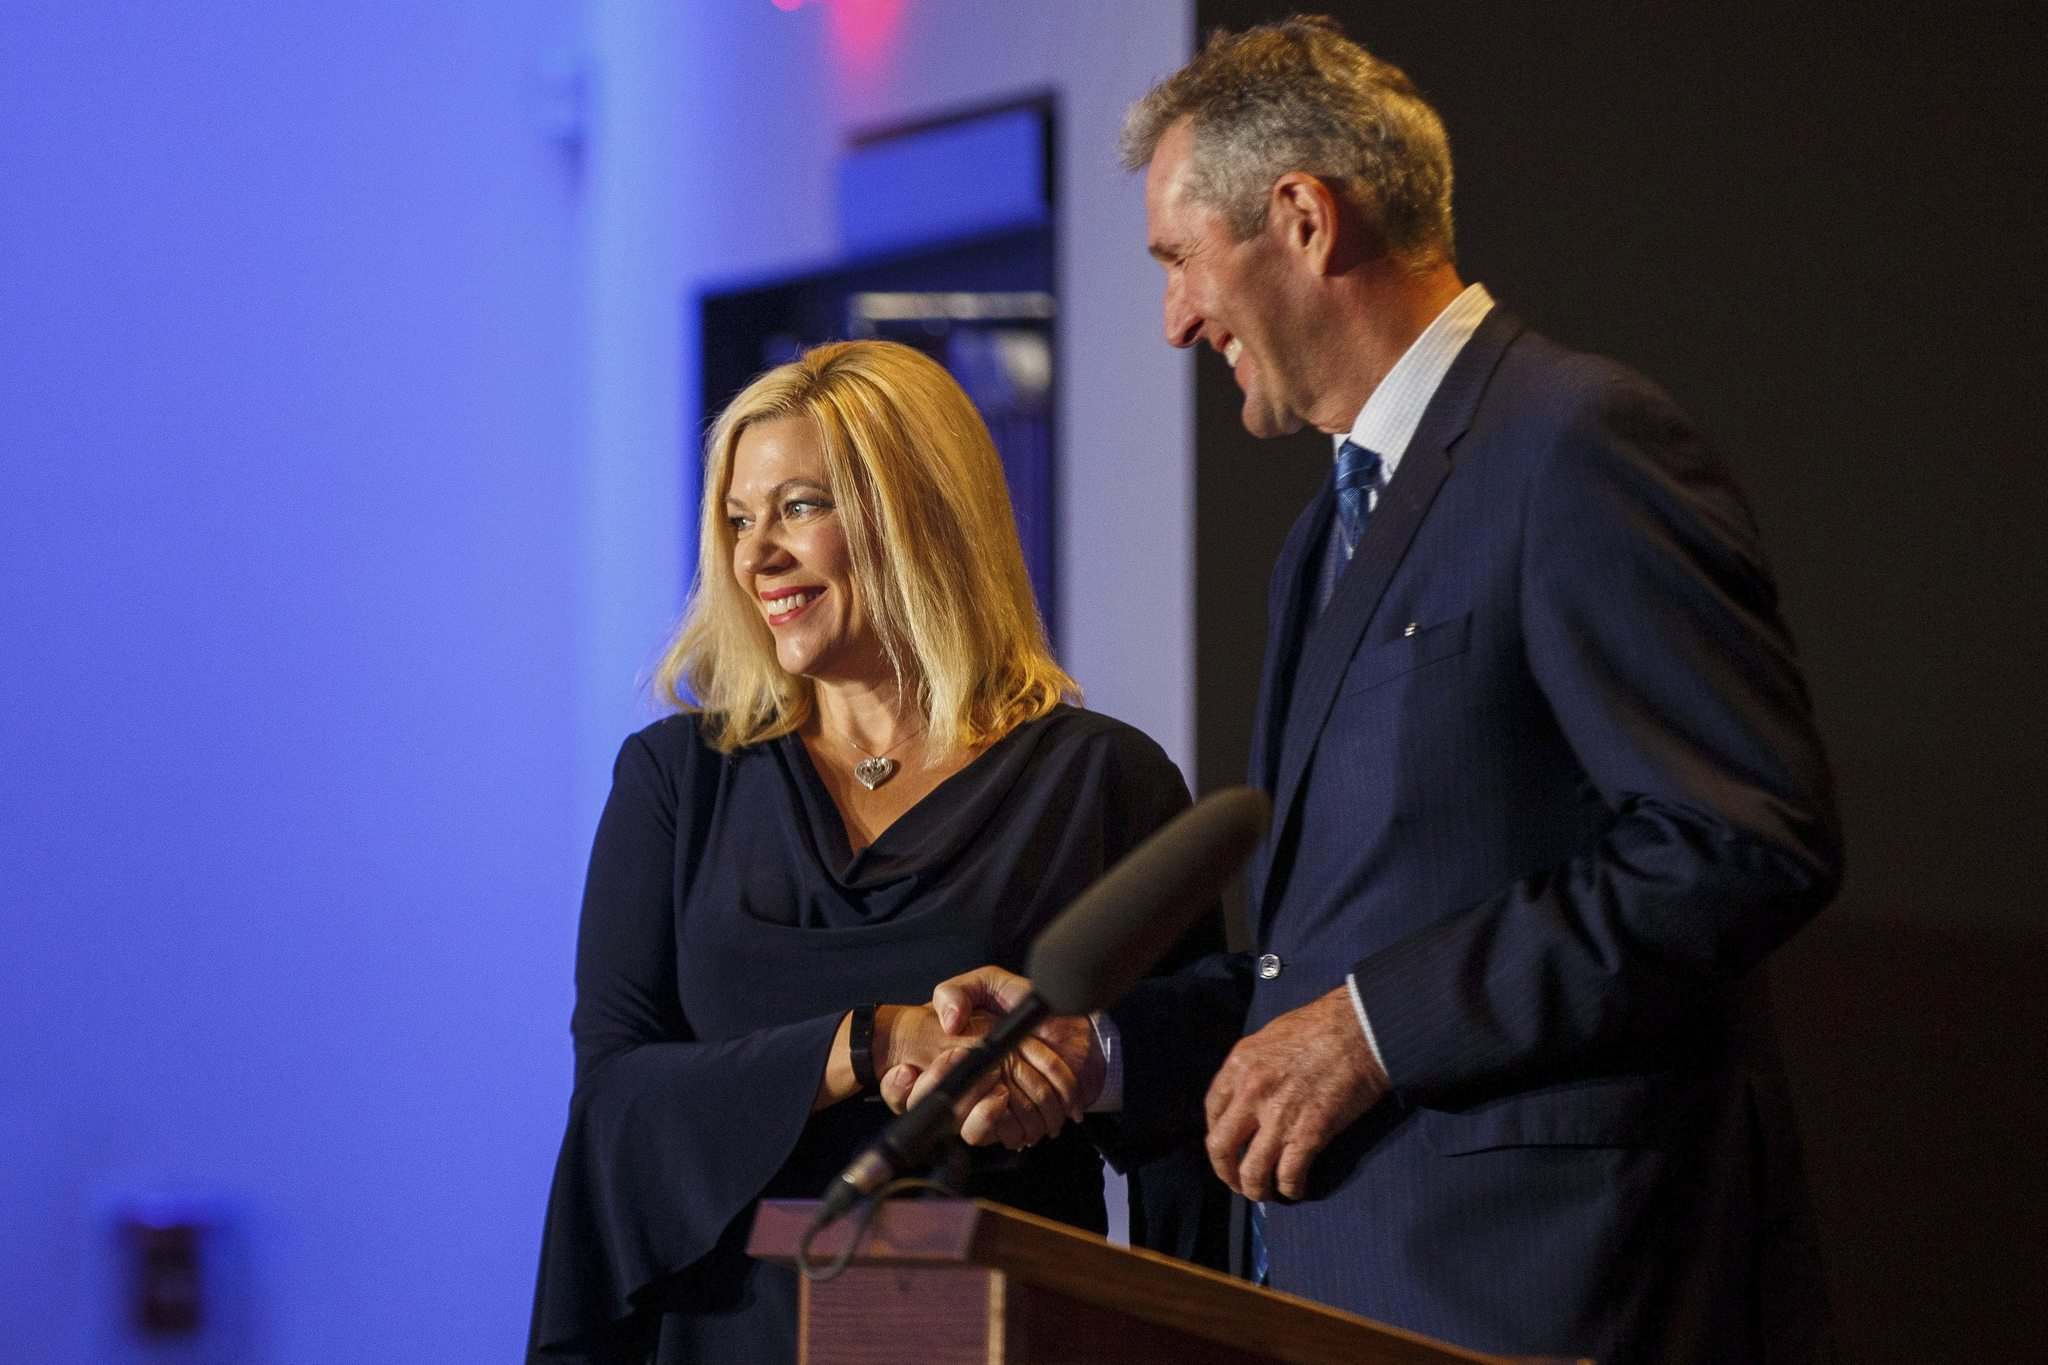 MIKE DEAL / WINNIPEG FREE PRESS</p><p>Rochelle Squires (MLA for Riel) is sworn in by Manitoba Premier Brian Pallister as the new minister for the Department of Municipal Relations, and minister responsible for Francophone Affairs.</p>